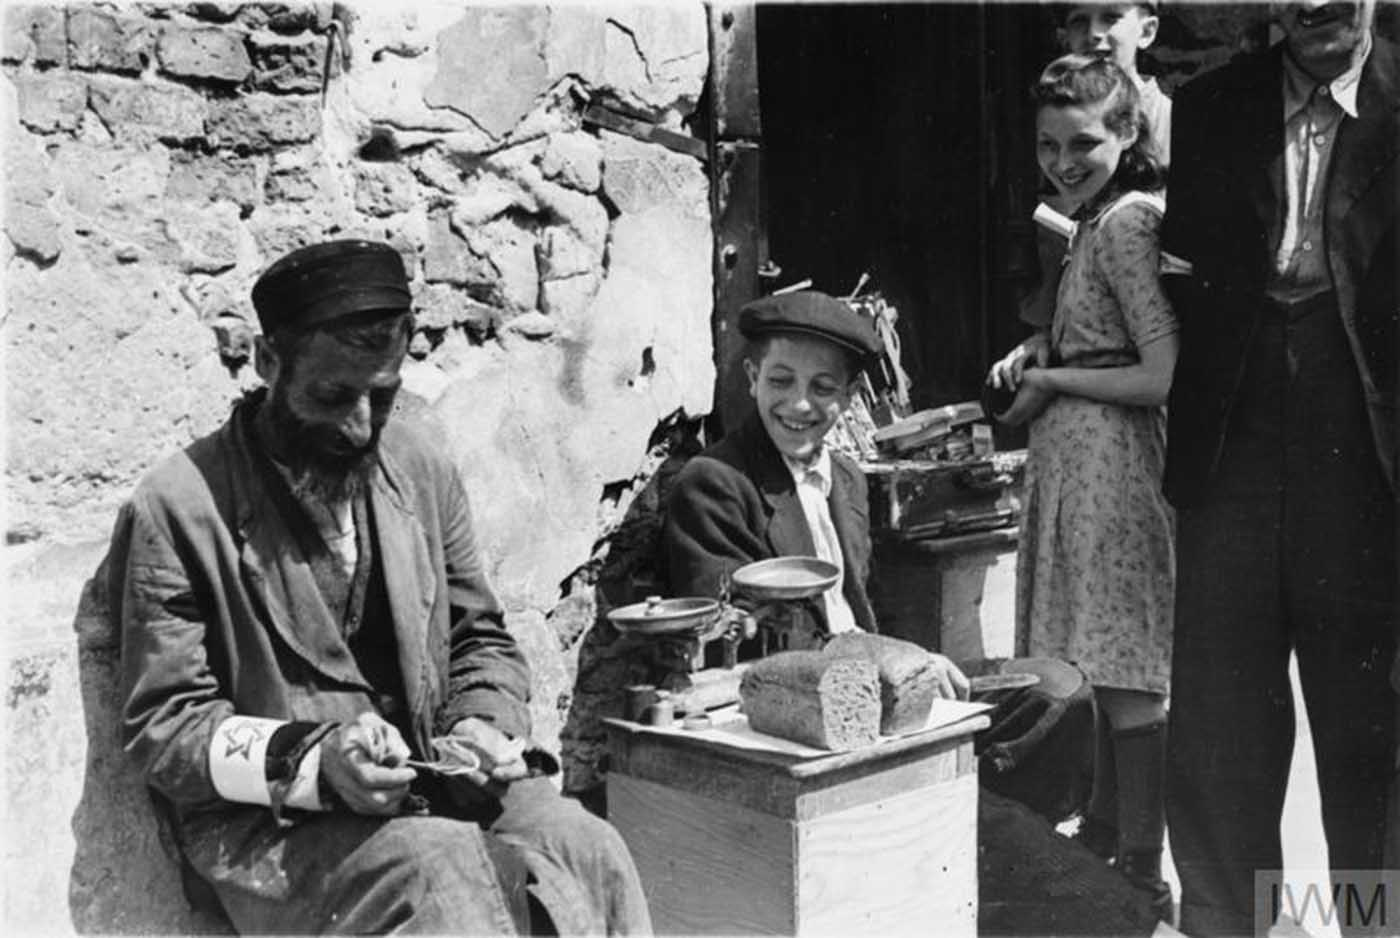 A Jewish man selling his bread allowance in the street of the ghetto, summer 1941.